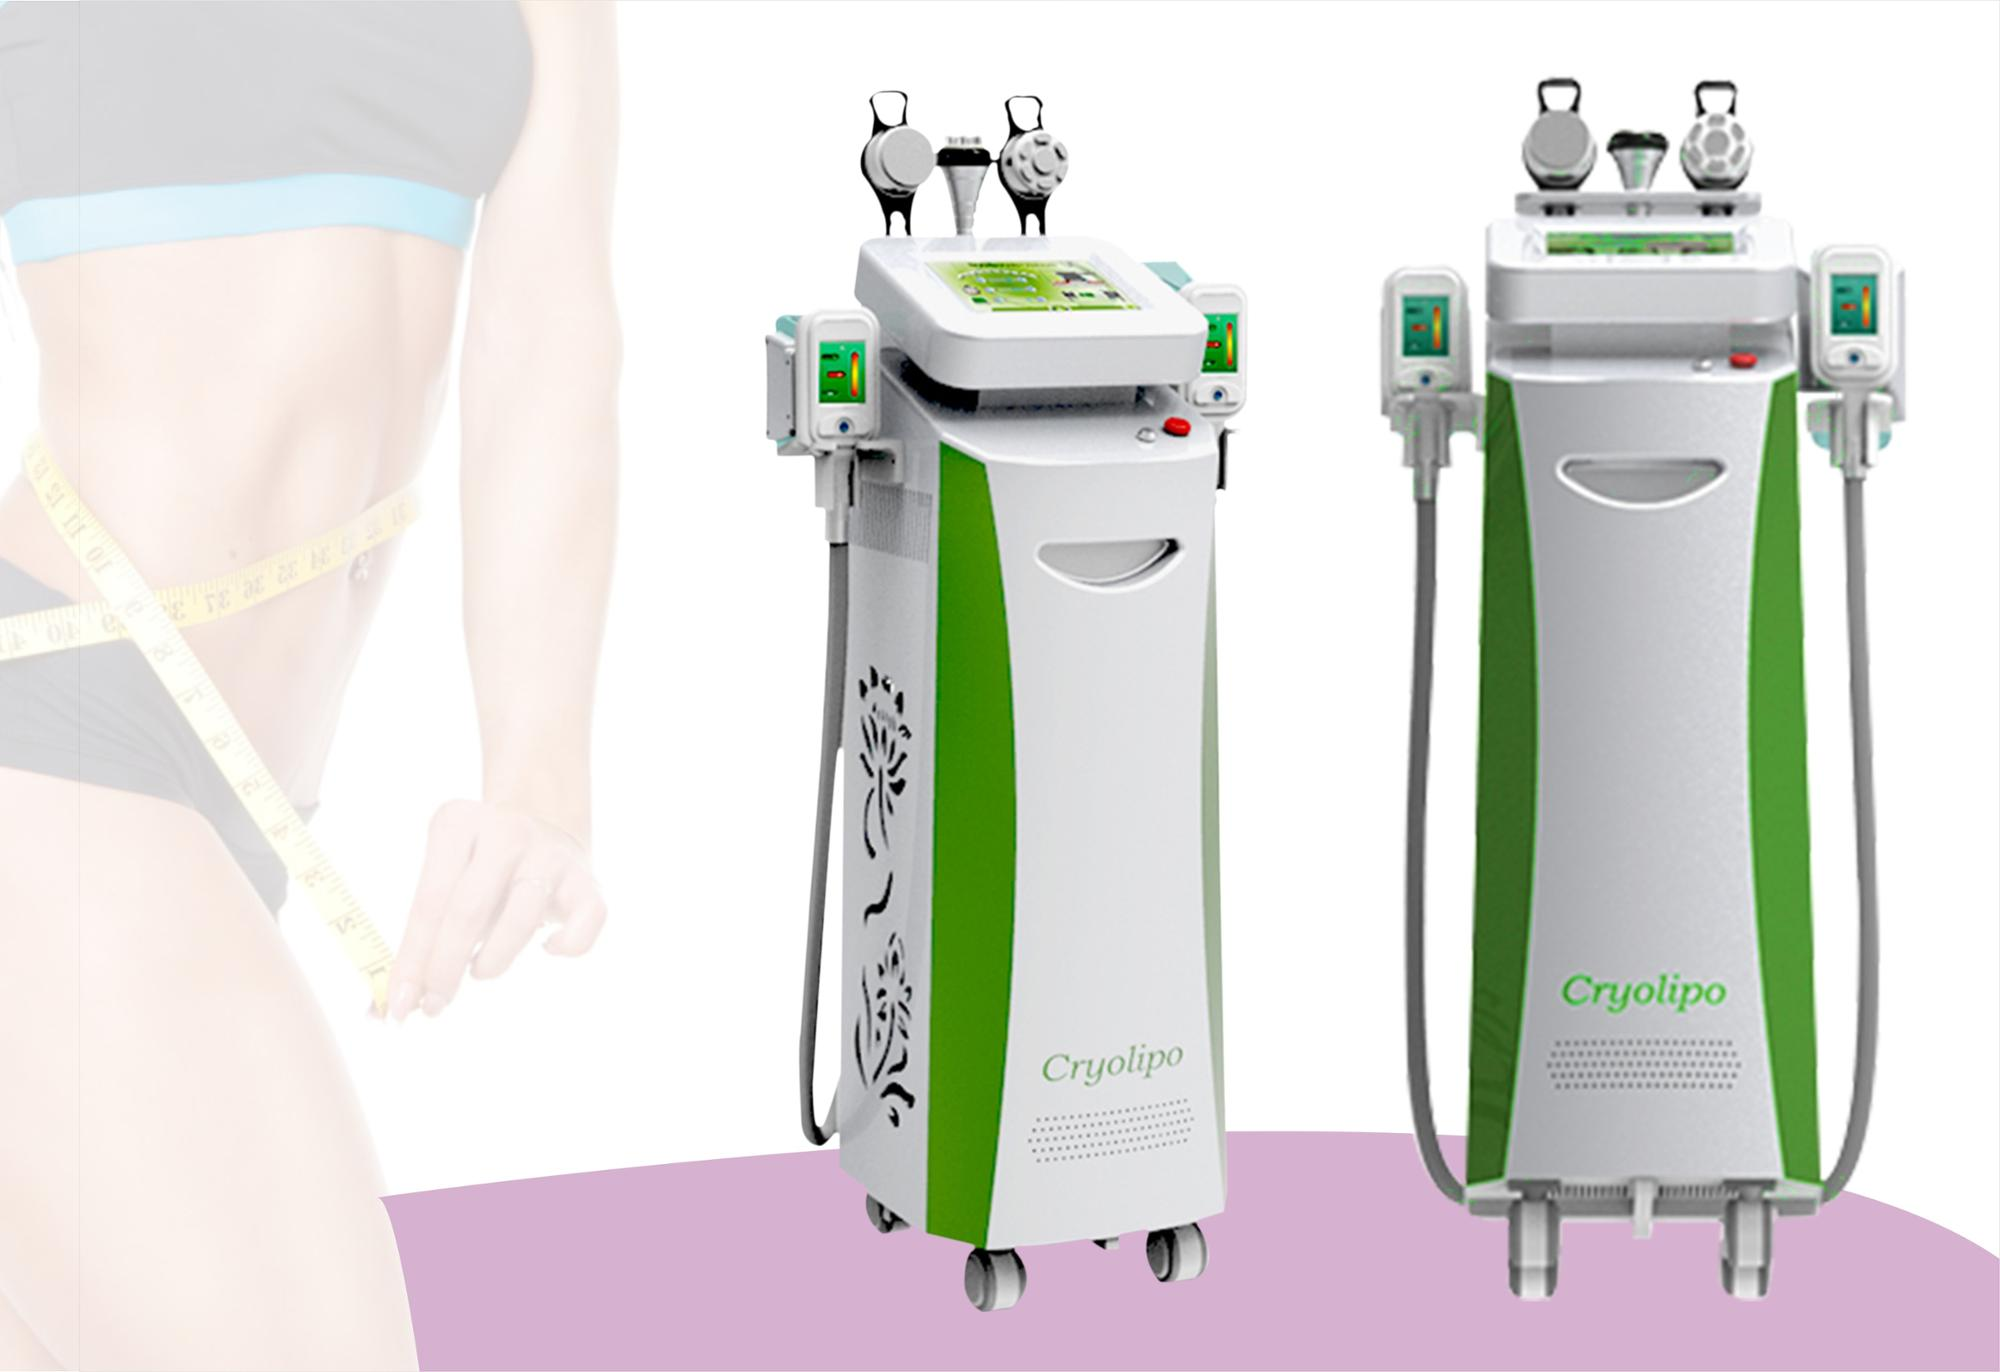 non-surgical reduce 26%-40% fat once 5 hands cryolipolysis equipment for sale/free zevertical cryolipolysis body fat reduce beau